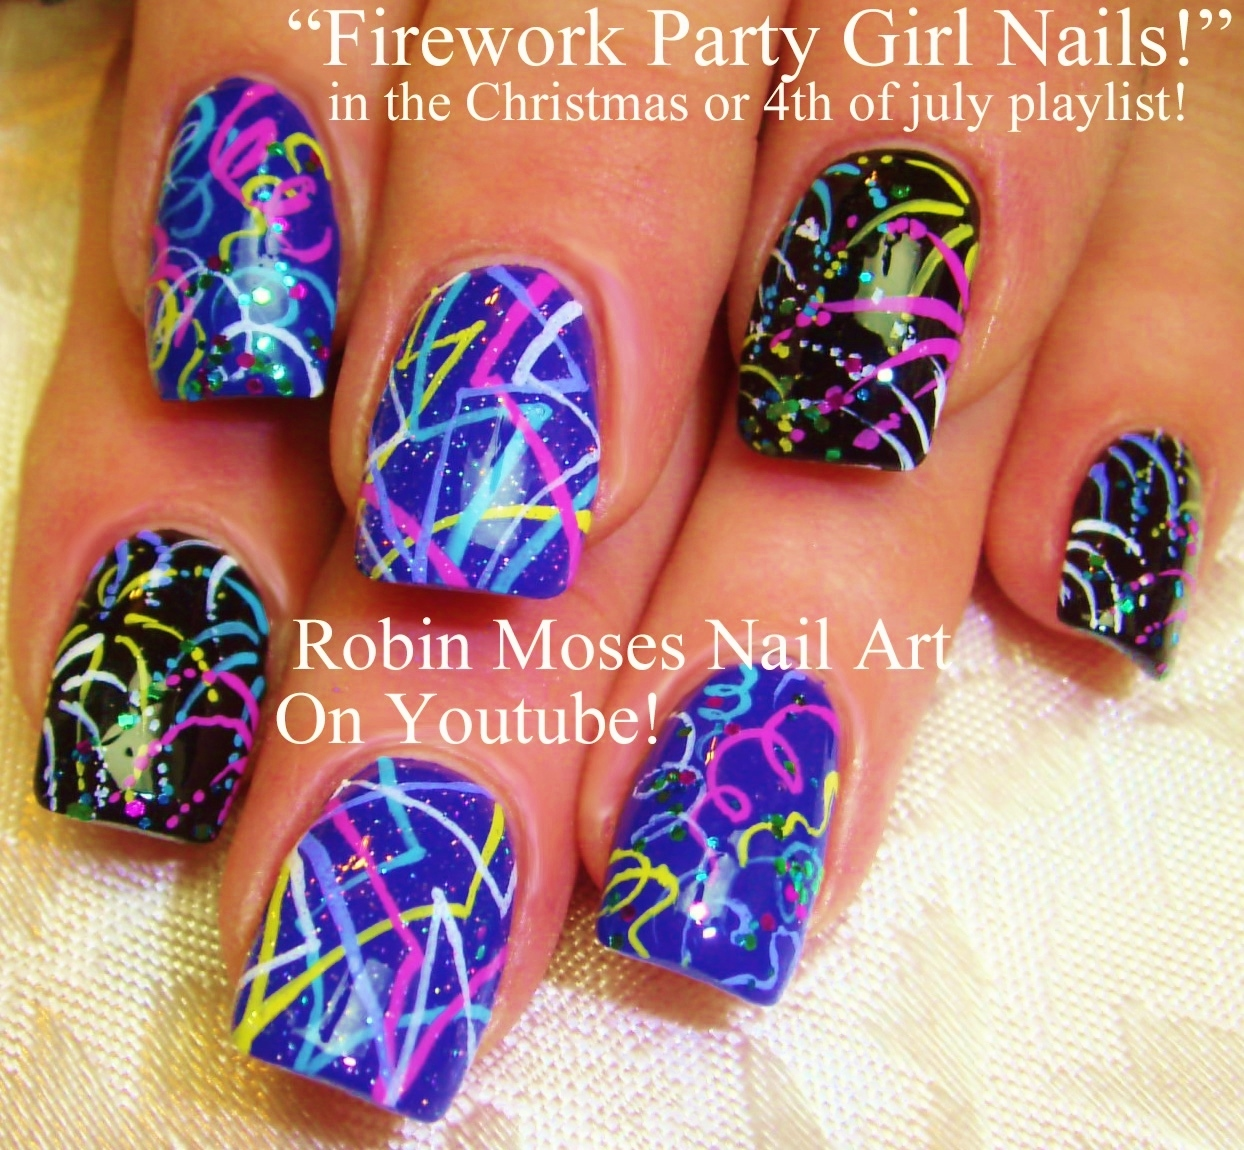 Robin moses nail art 2015 here are tons of nye nail art ideas for you to design and have fun painting prinsesfo Image collections